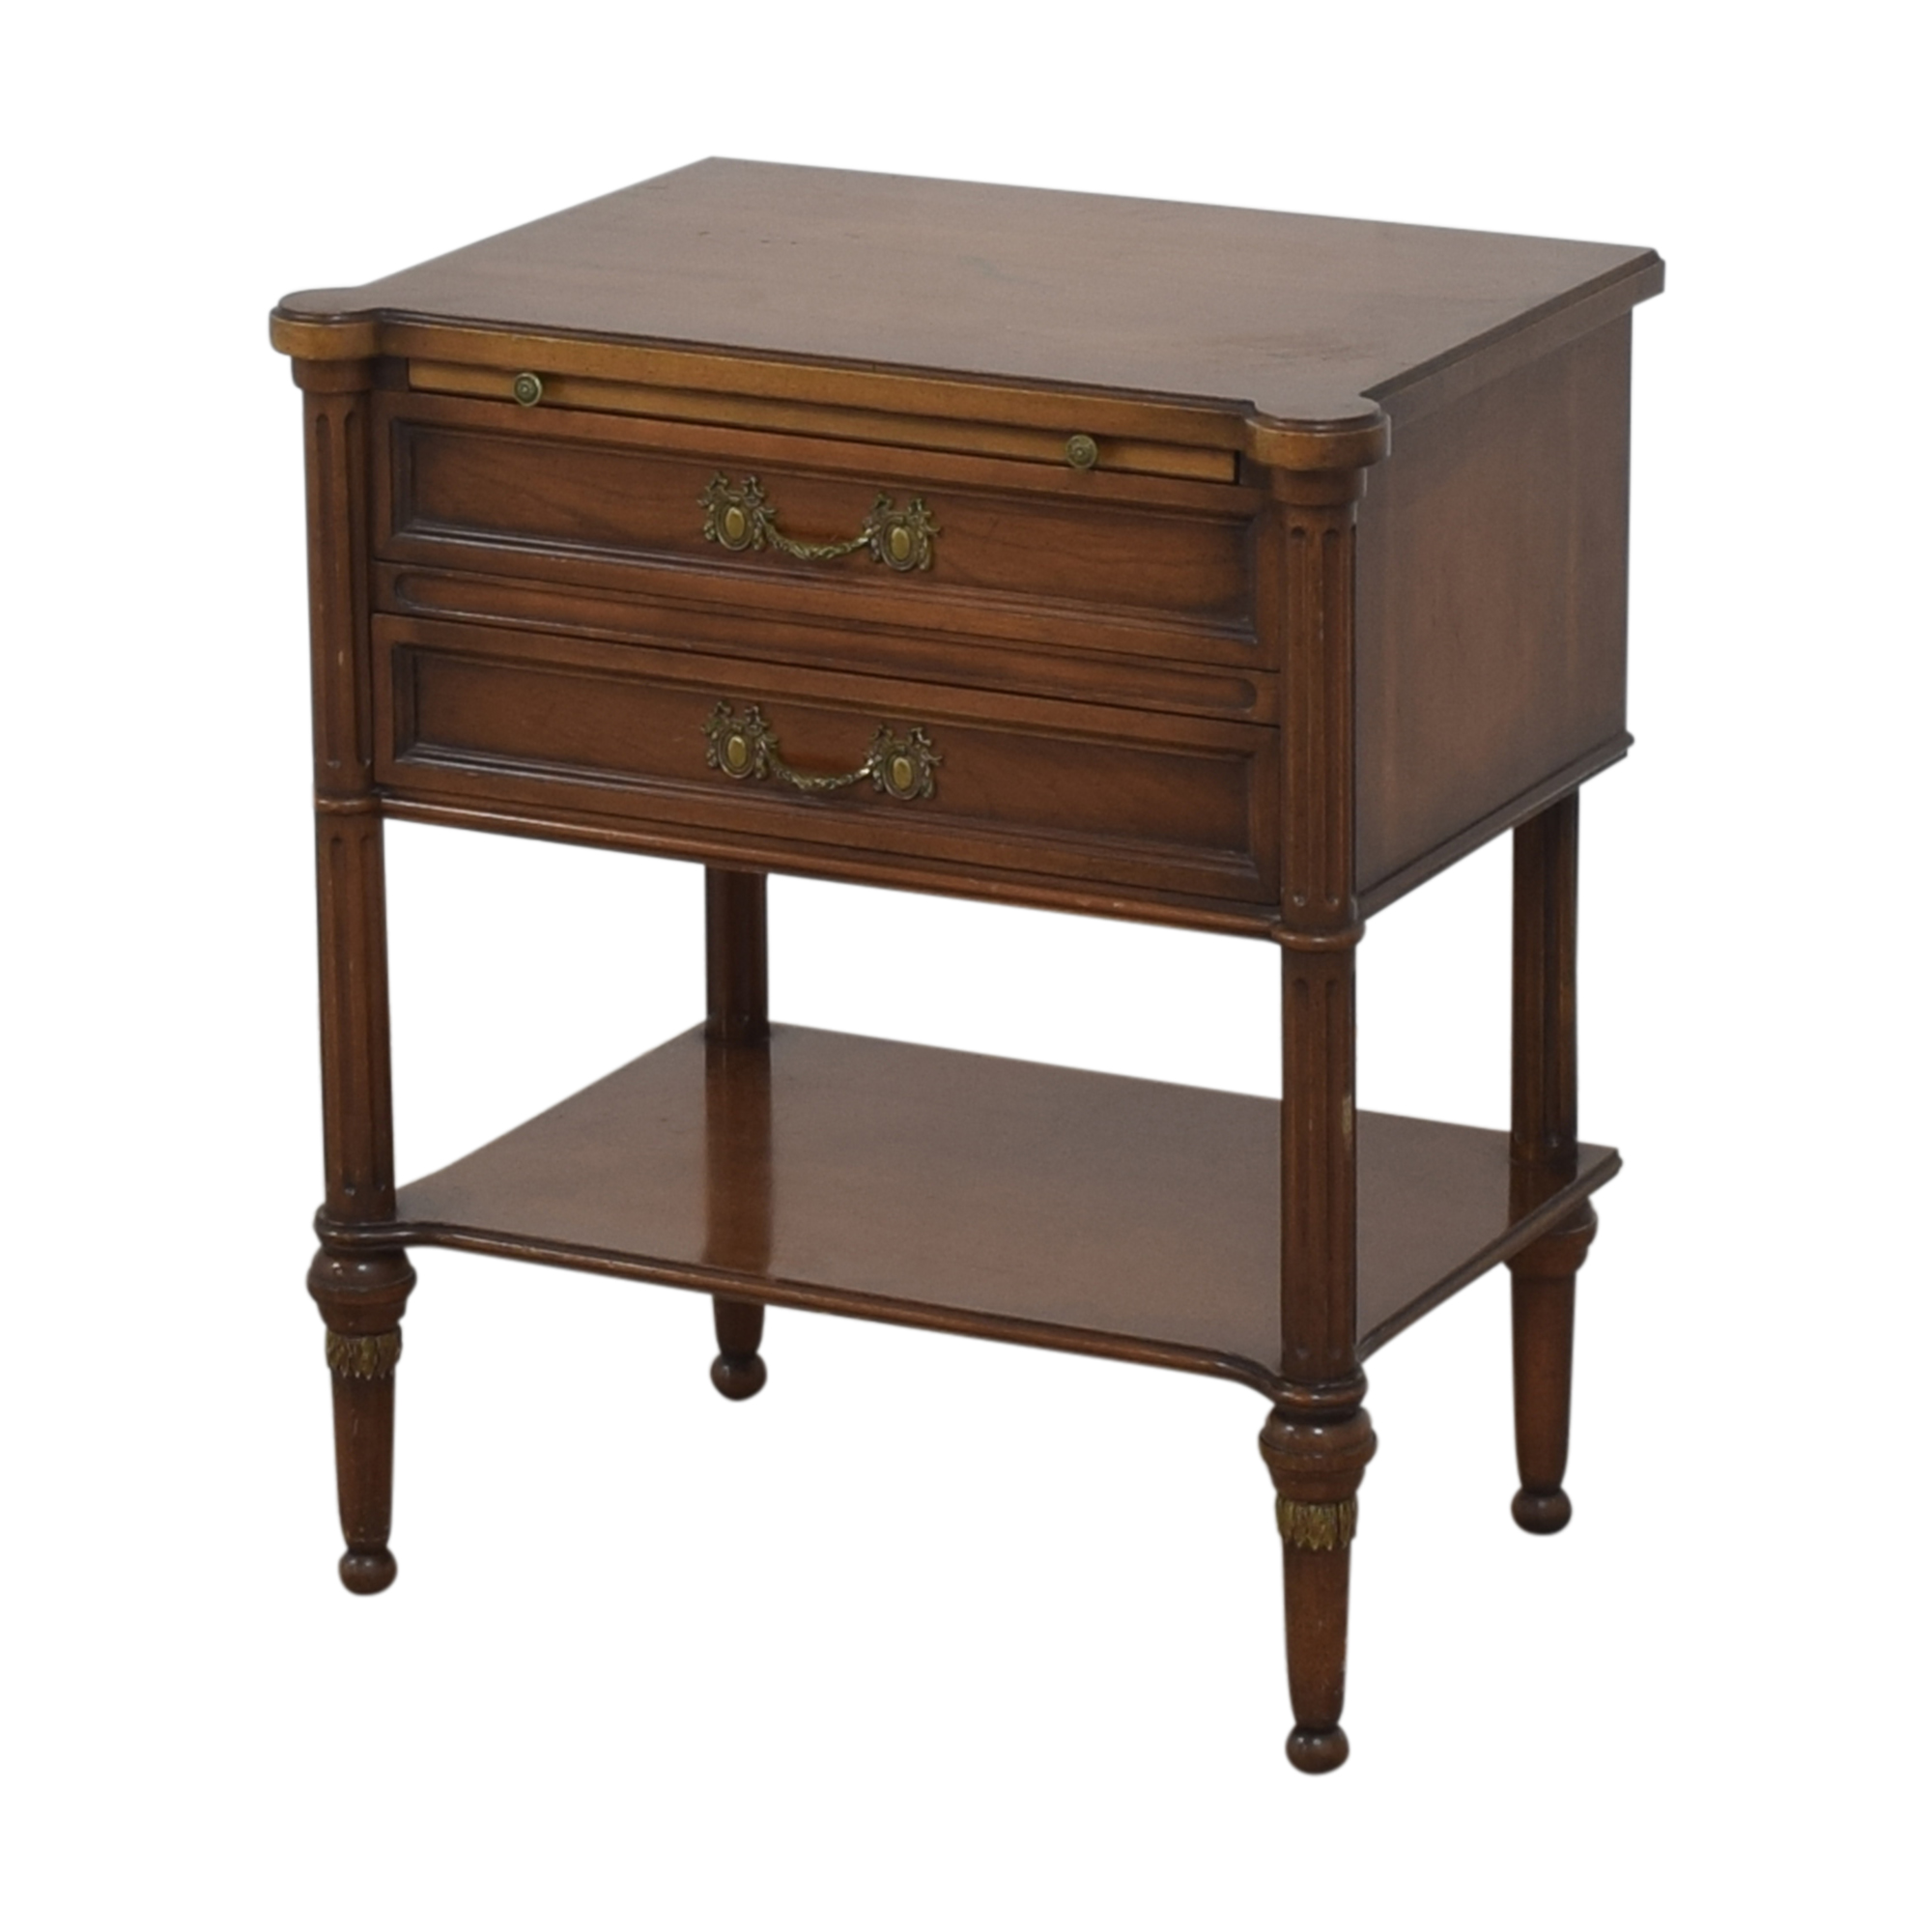 Two Drawer End Table with Desk Extension used